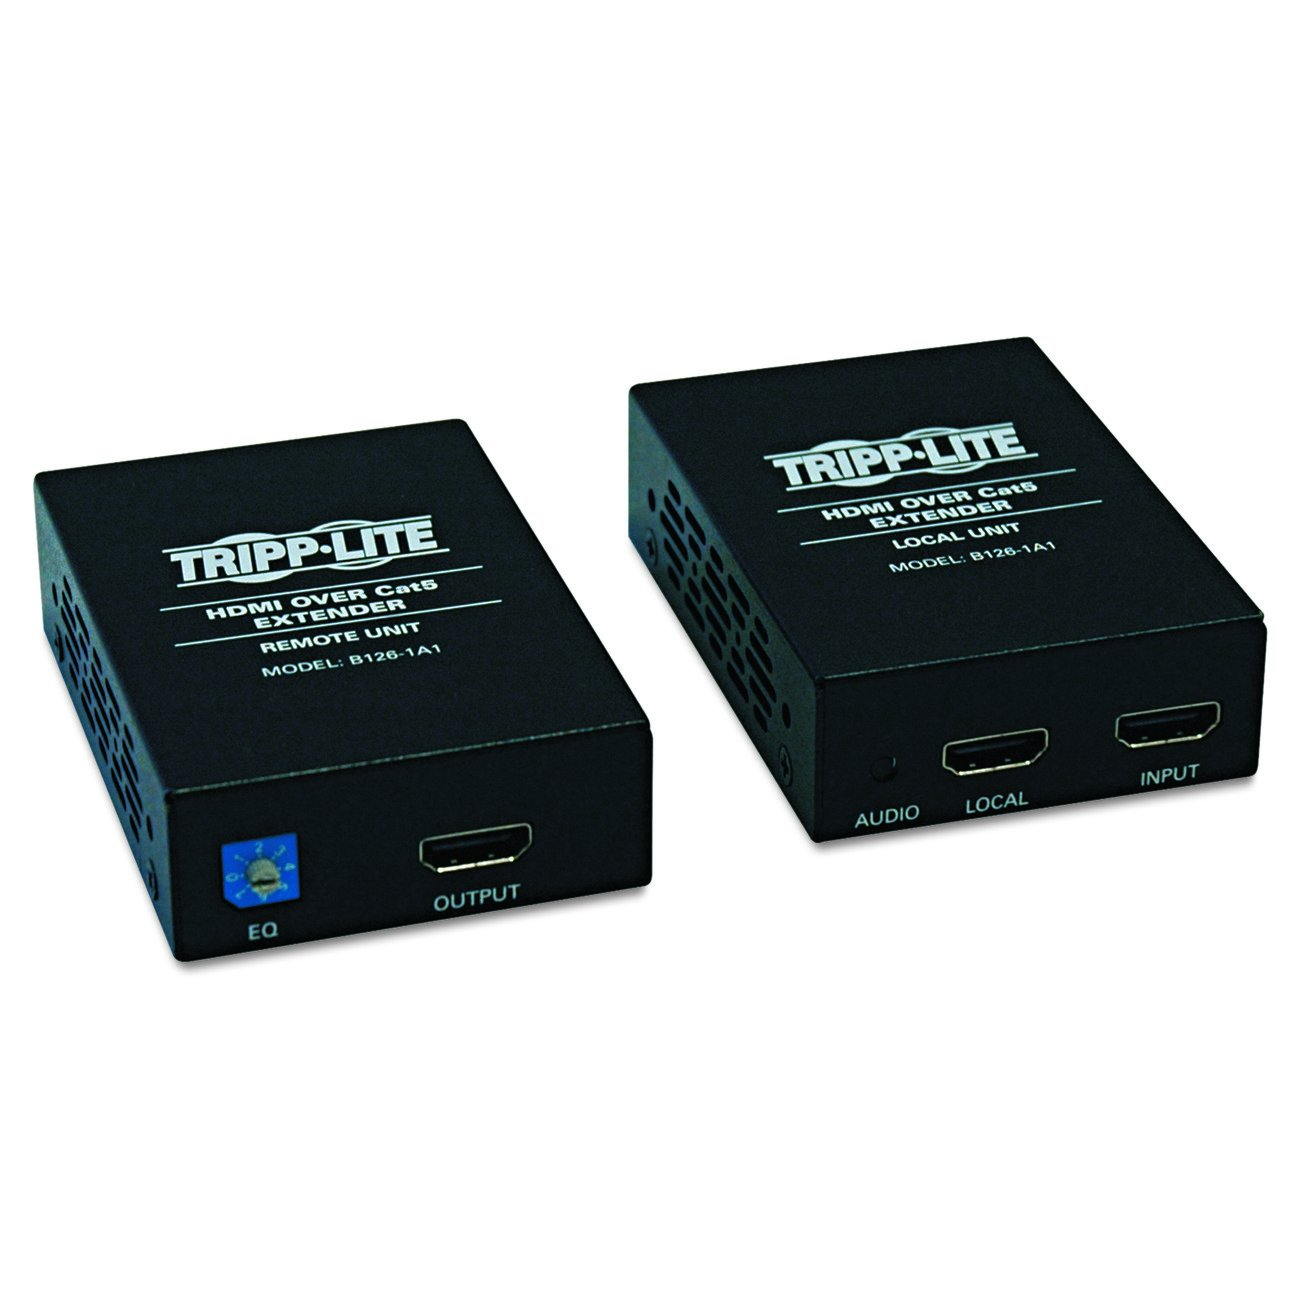 Tripp Lite HDMI Over Cat5 / Cat6 Extender, Extended Range Transmitter and Receiver for Video and Audio 1920x1200 1080p at 60Hz(B126-1A1) by TRJP9